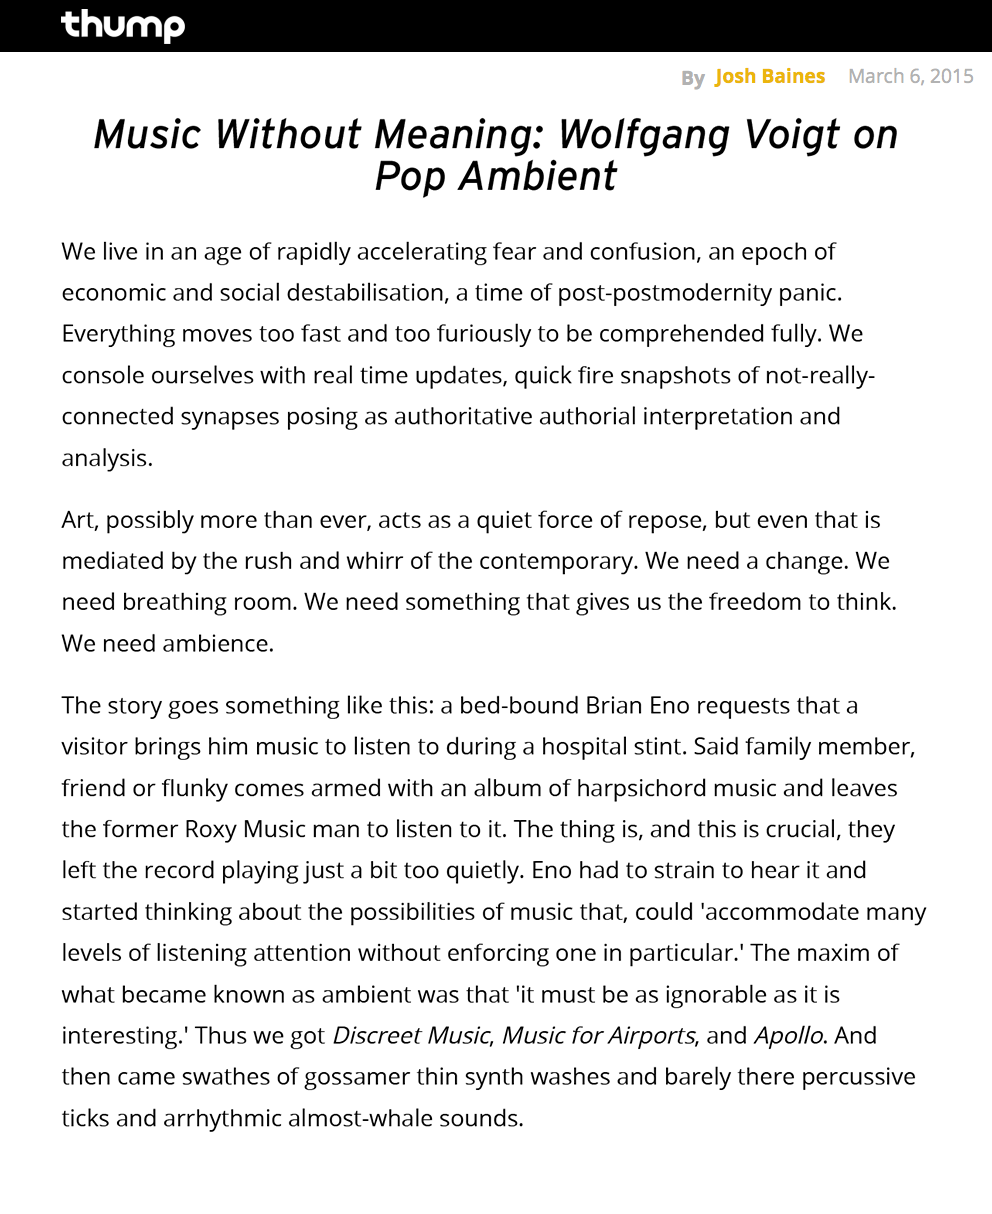 MUSIC WITHOUT MEANING: WOLFGANG VOIGT ON POP AMBIENT / 2015